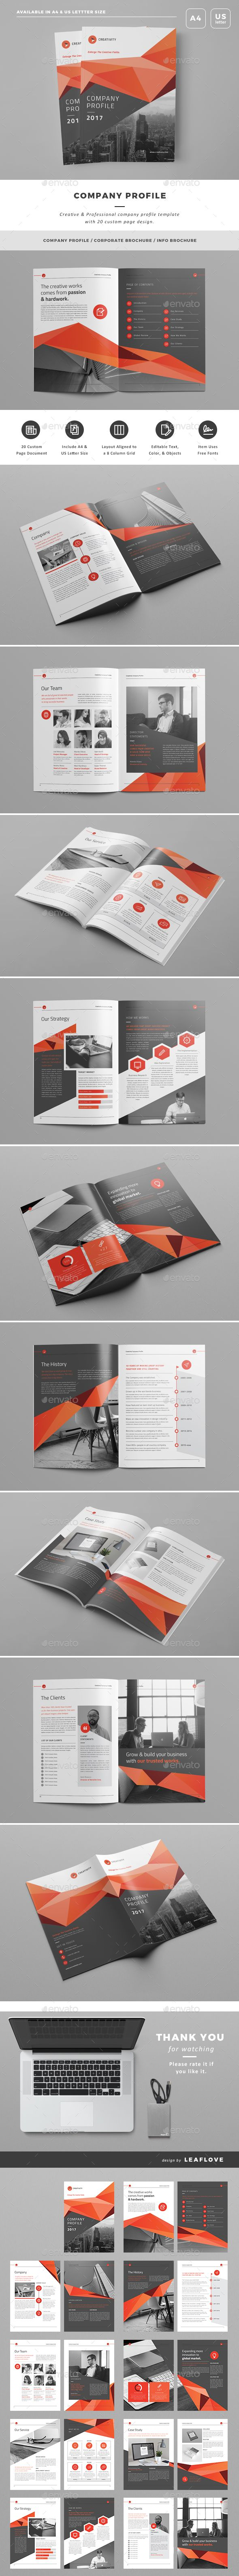 Company Profile — InDesign INDD #portfolio #design • Download ➝ https://graphicriver.net/item/company-profile/18829557?ref=pxcr